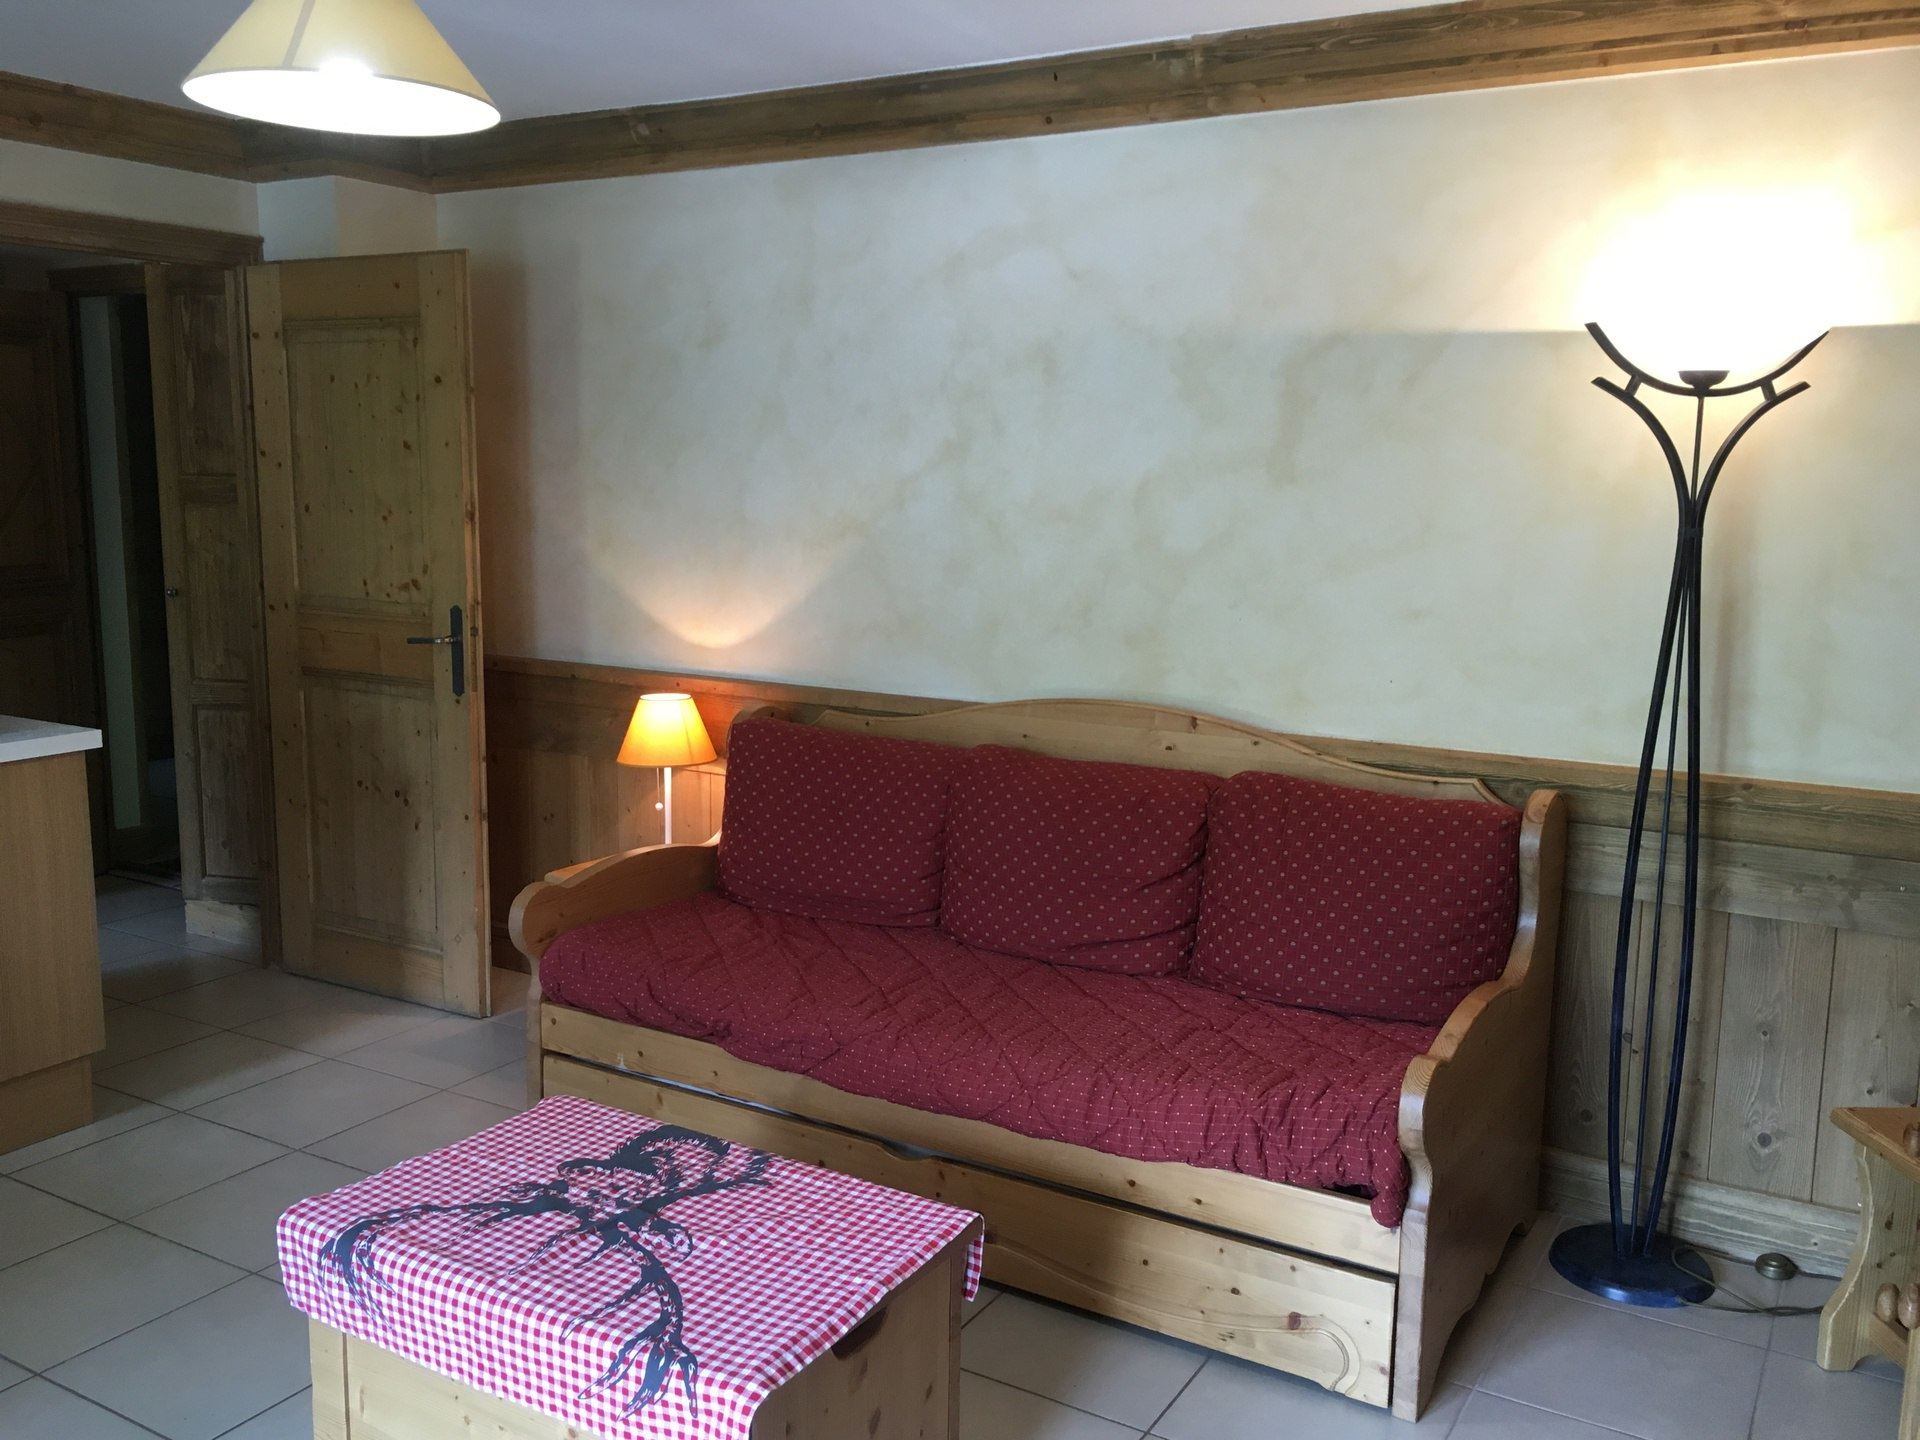 2 Rooms 4 Pers ski-in ski-out / LE COCHET 6